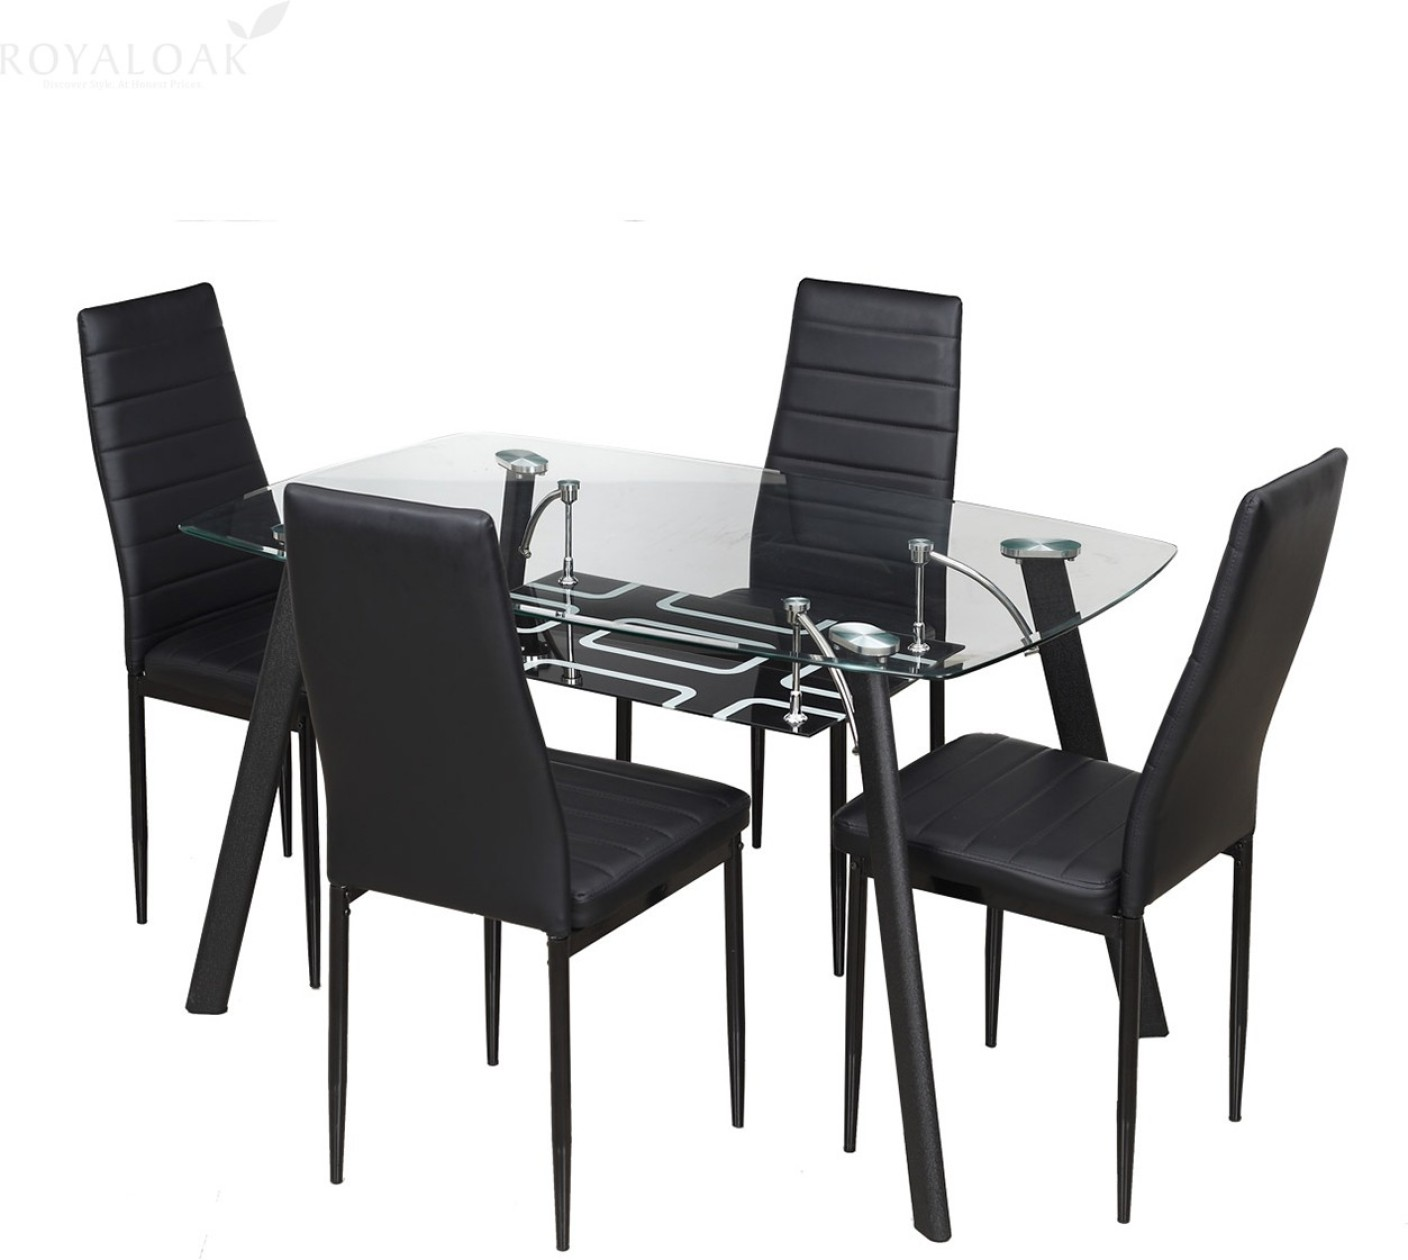 Royaloak milan glass 4 seater dining set price in india for Dining table set 4 seater